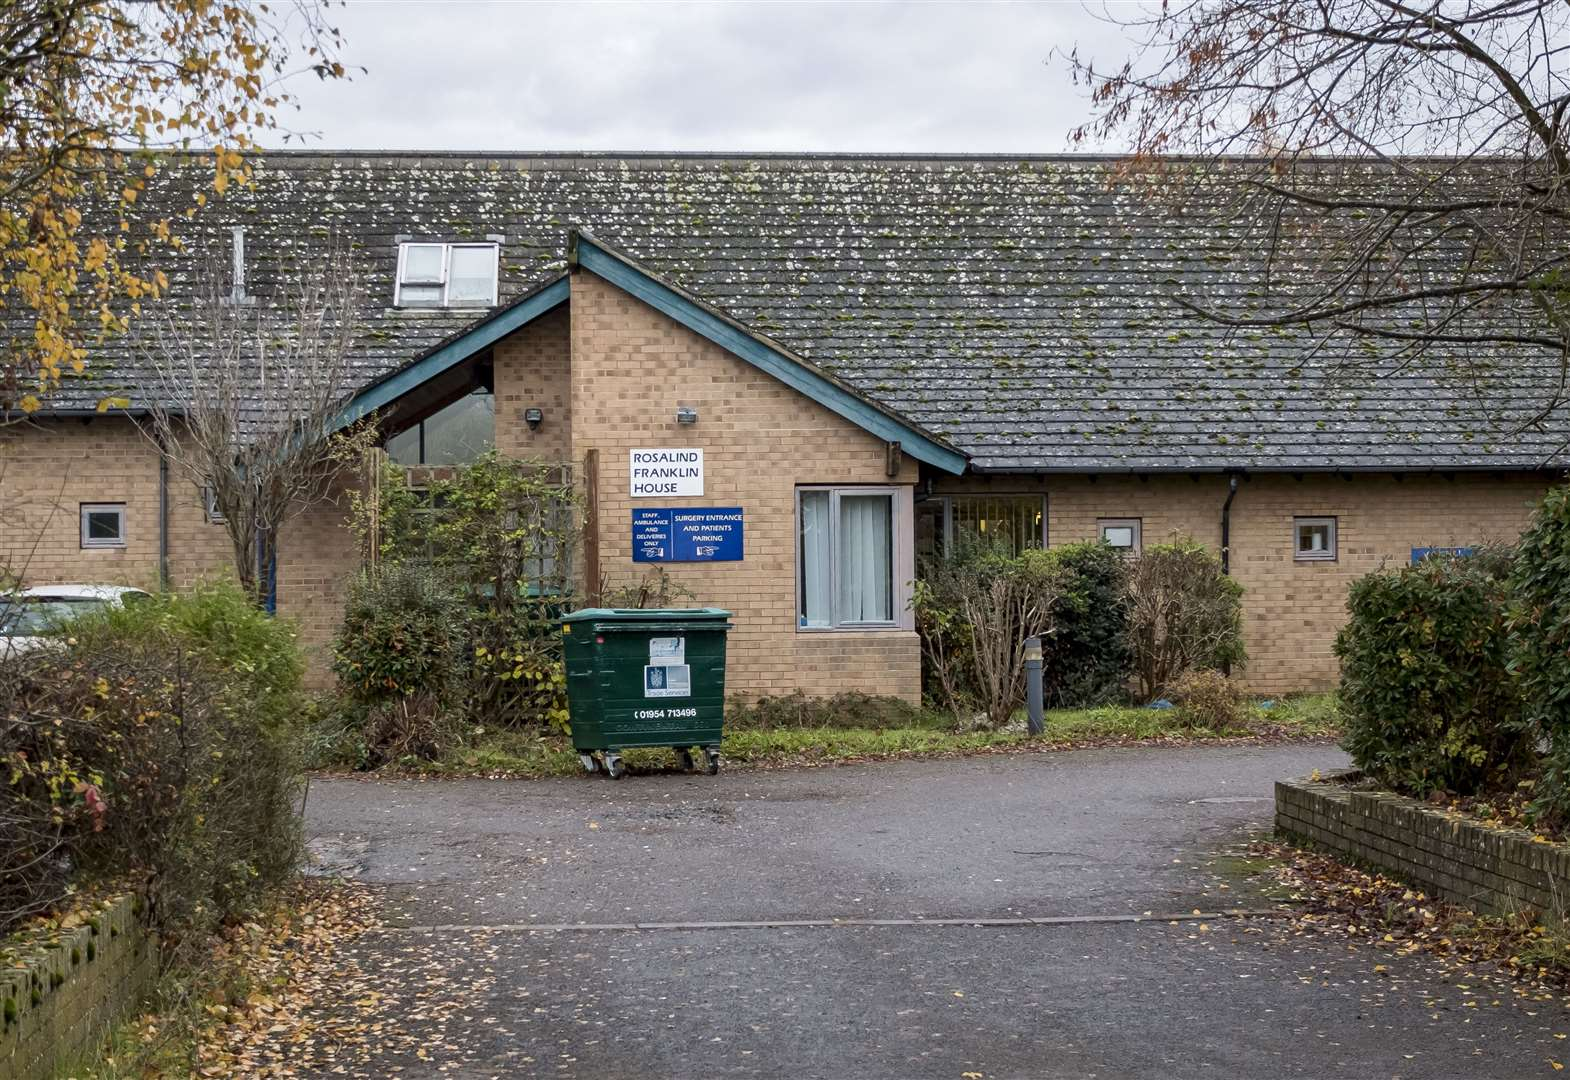 Caretakers put in charge at Waterbeach Surgery after sudden closure